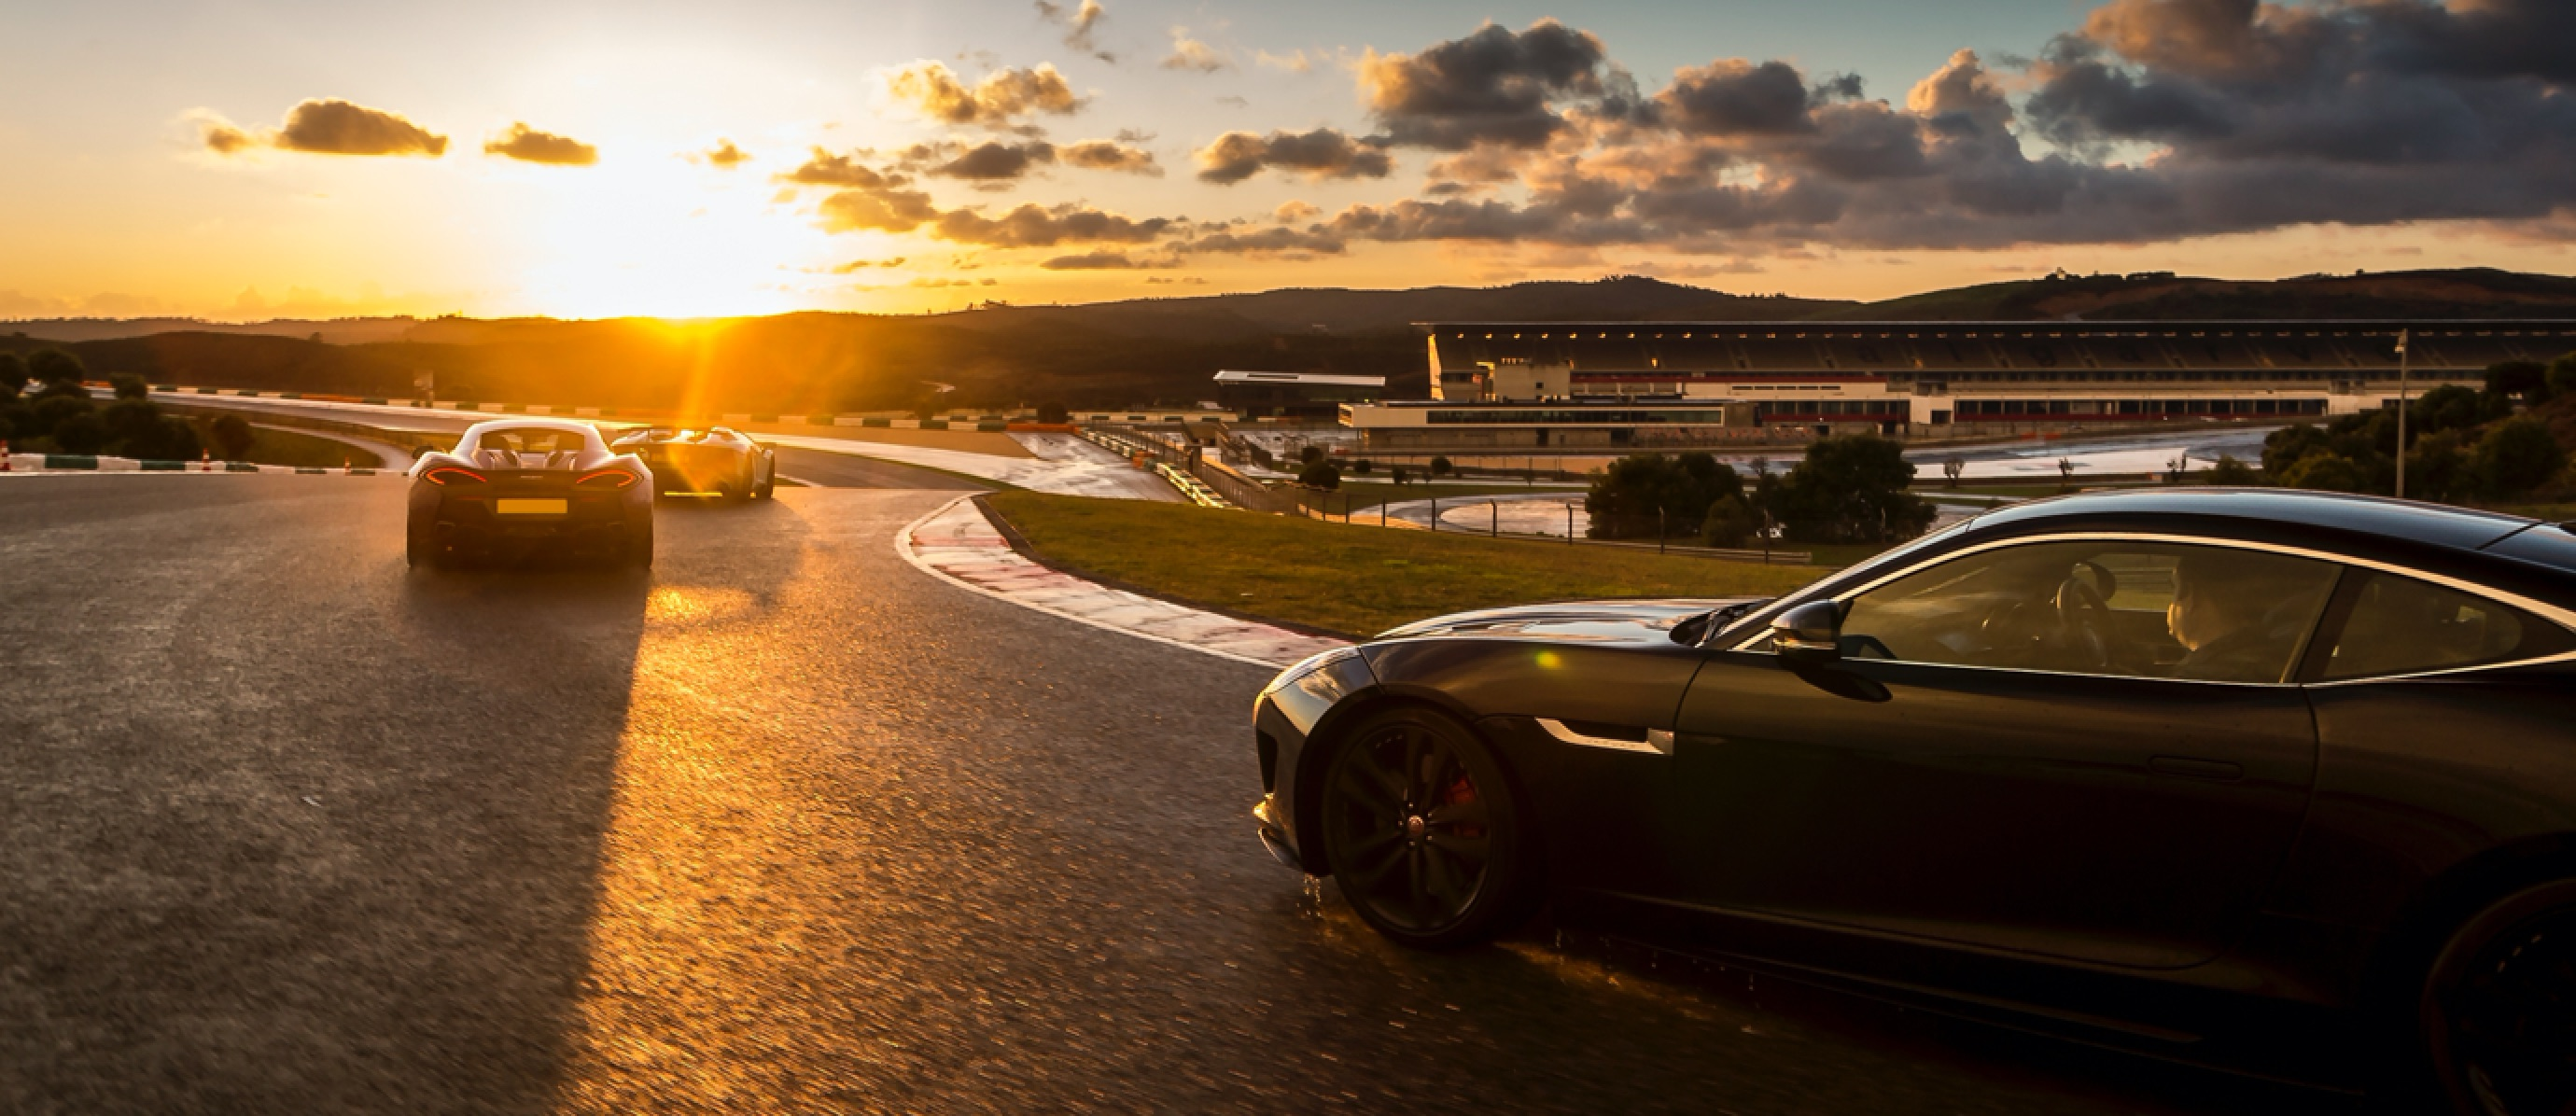 Gorgious sunset shot of supercars on a road